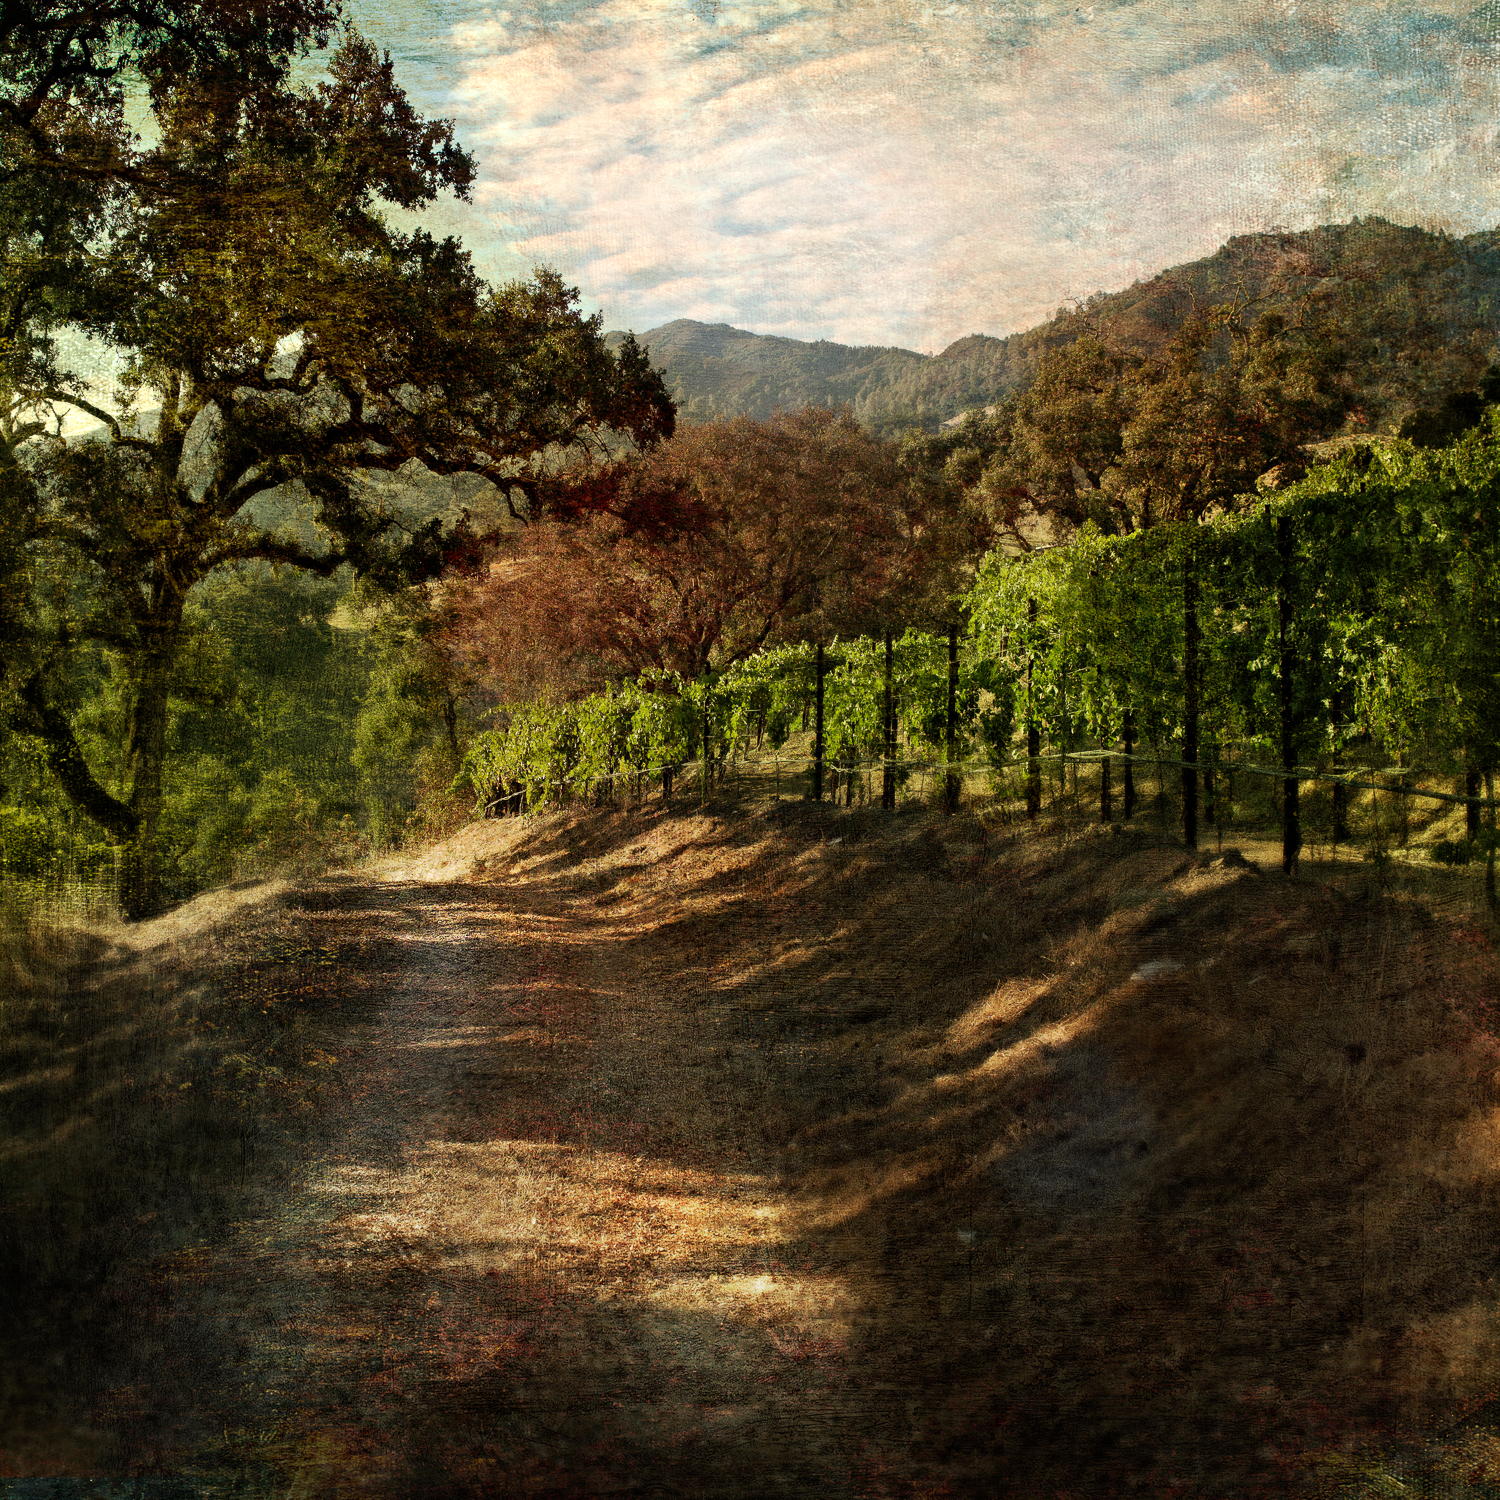 mountain_vineyardv6v2F.jpg